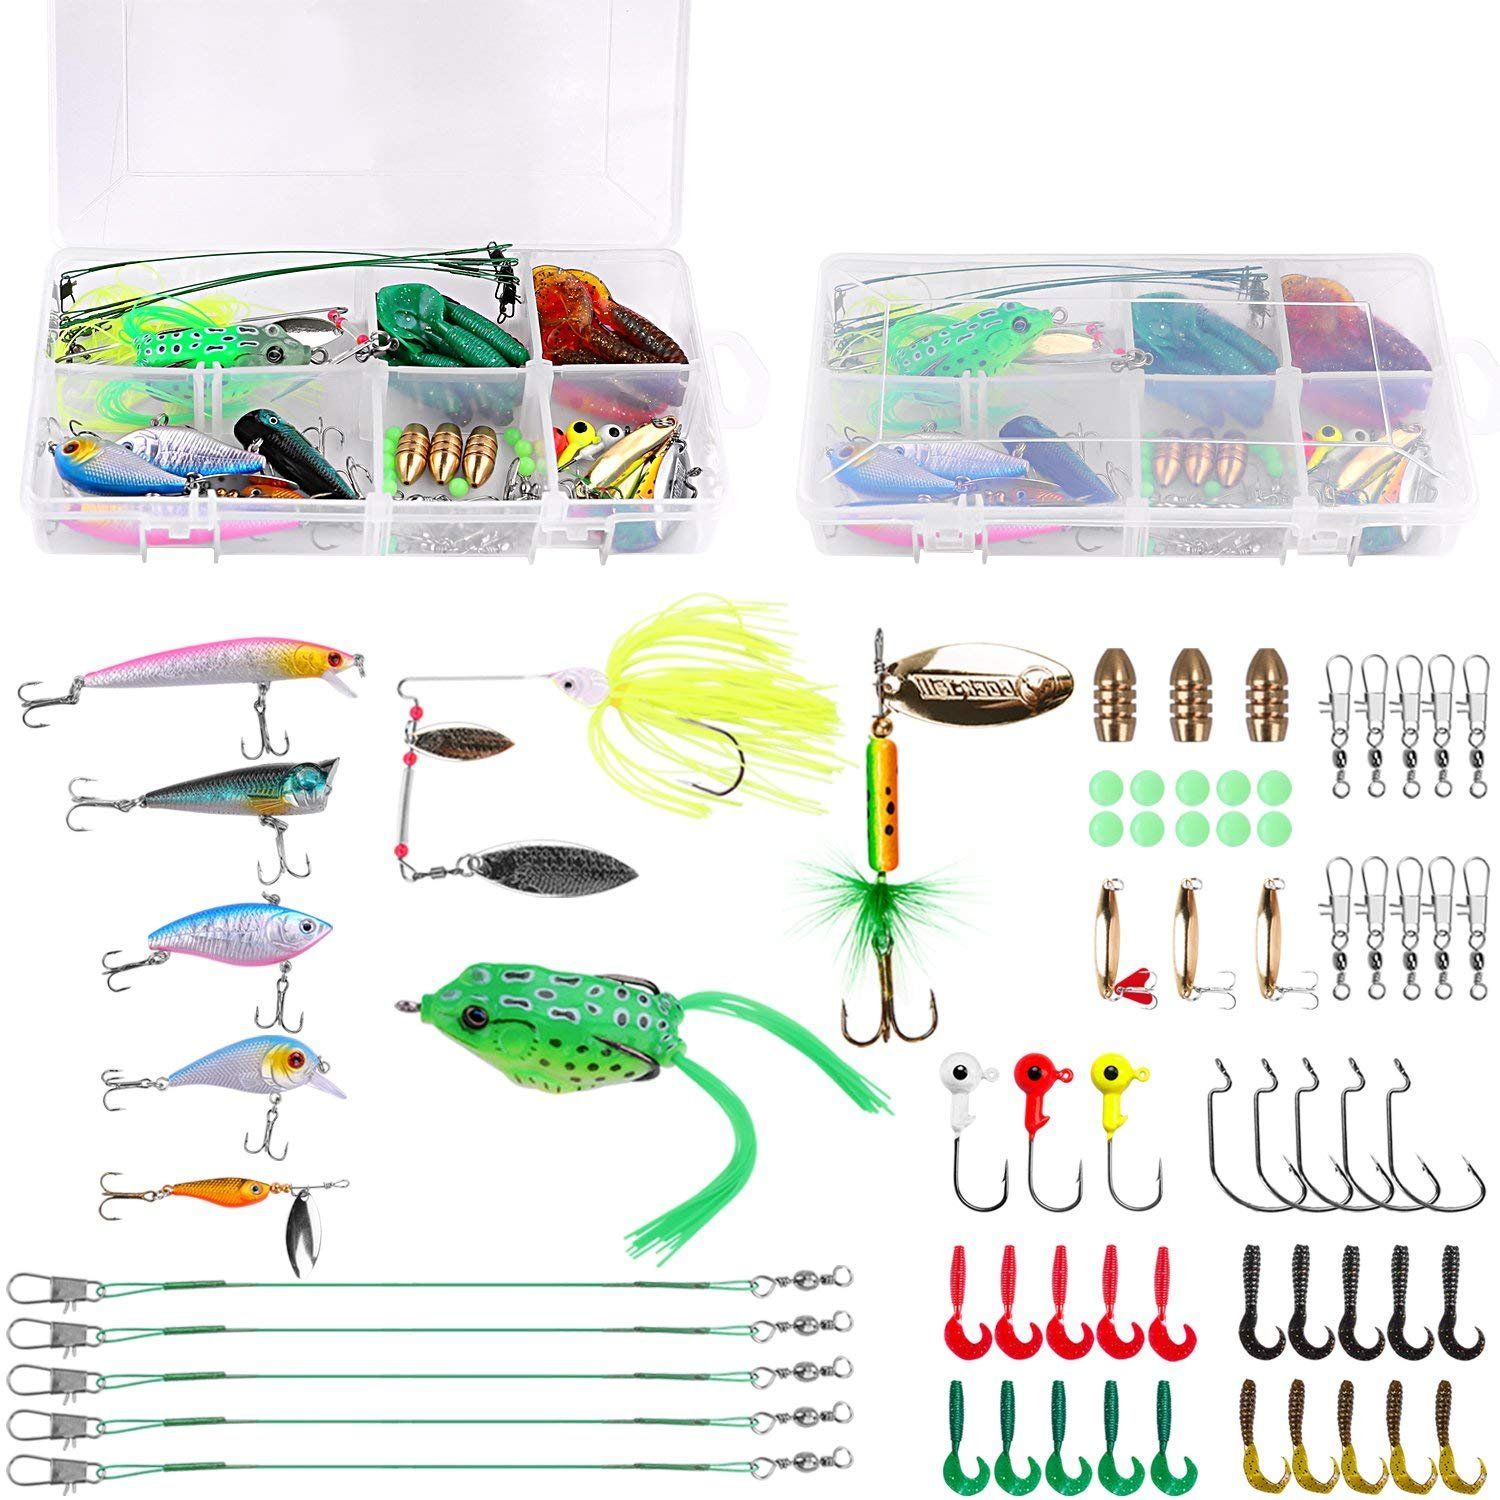 PLUSINNO Fishing Lures Baits Tackle Including Crankbaits, Spinnerbaits, Plastic Worms, Jigs, Topwater Lures, Tackle Box and More Fishing Gear Lures Kit Set (67Pcs Fishing Lure Tackle) by PLUSINNO